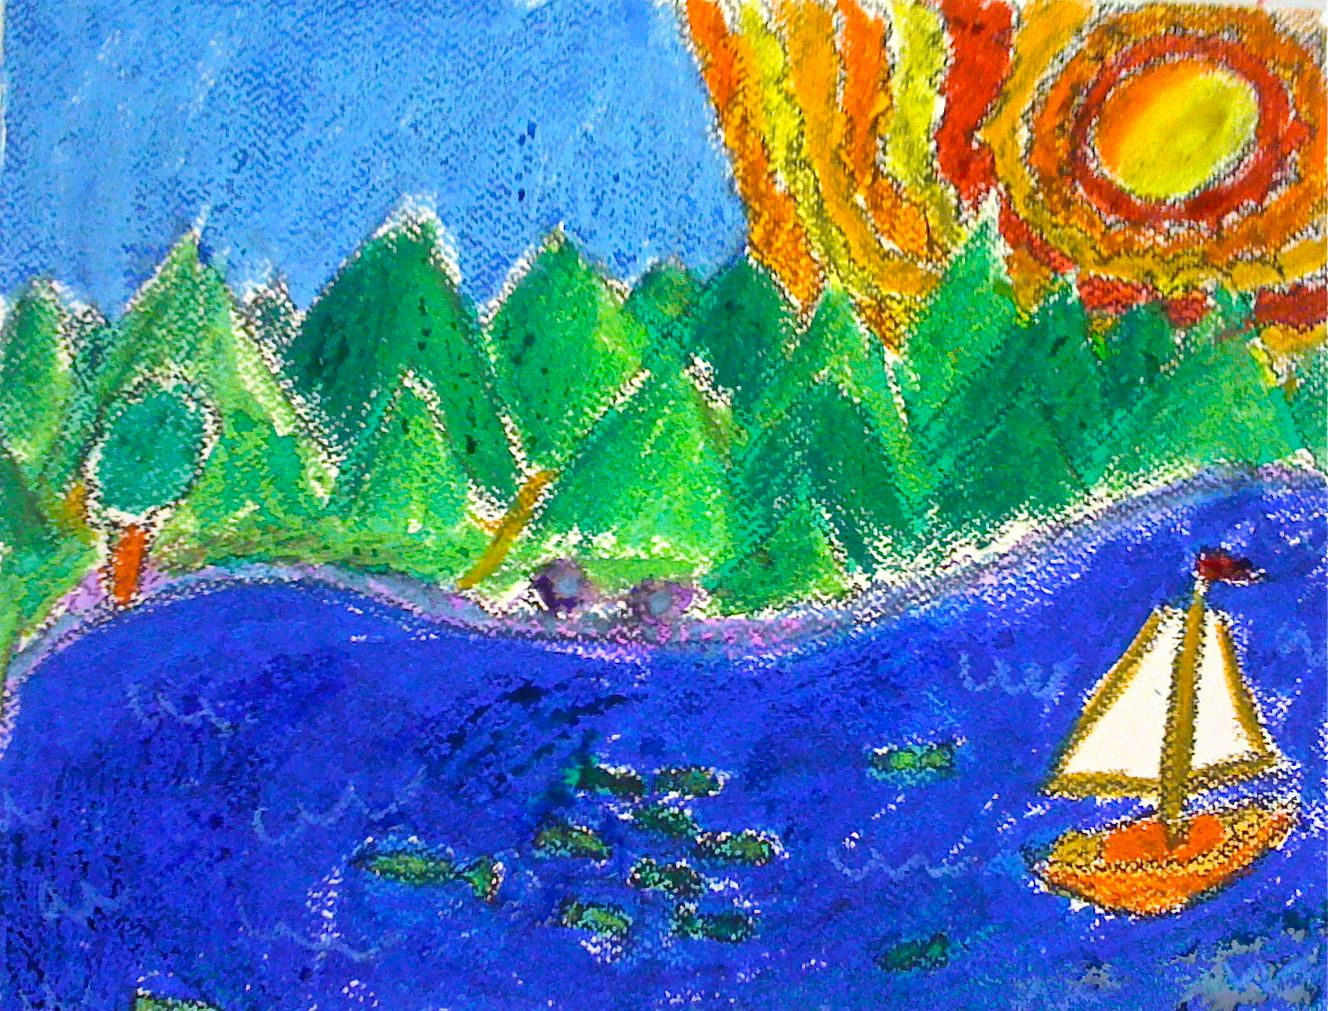 Kids Art Market: Warm and Cool Color Seascape with Hans Hoffman